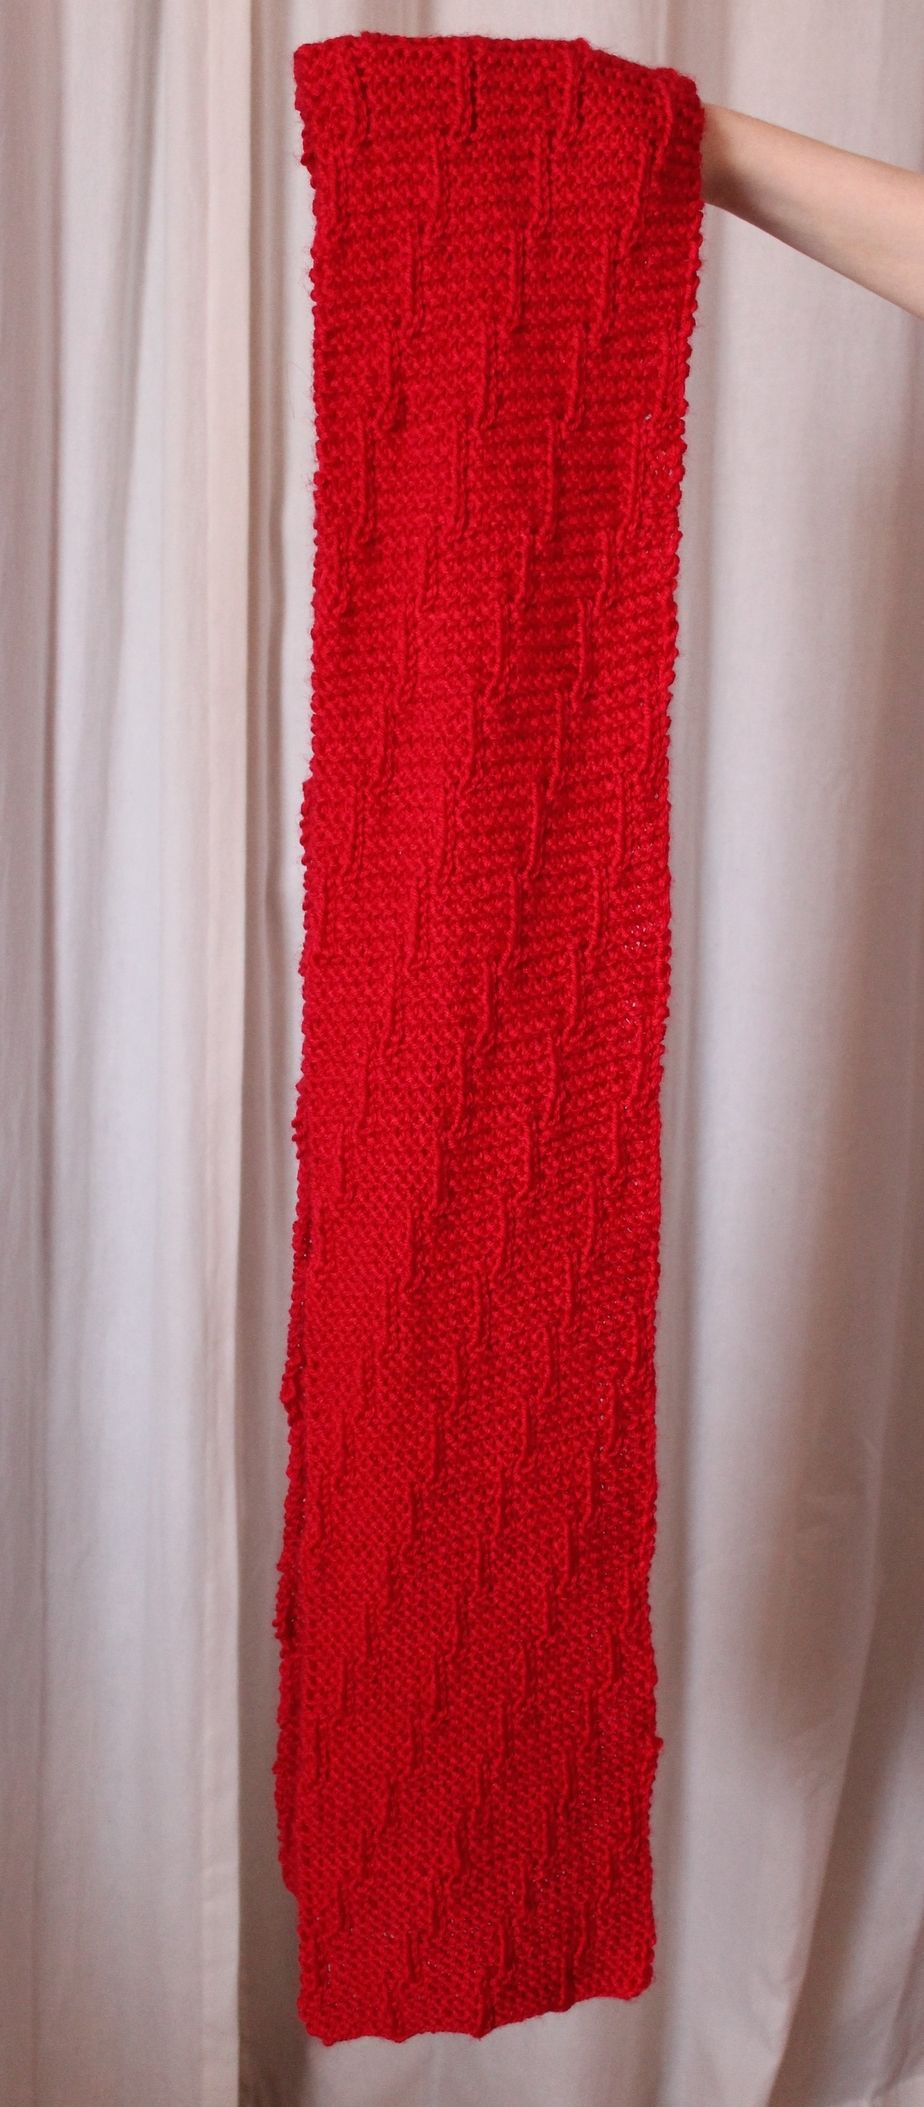 Free Pattern Friday: The Latest for the Red Scarf Project! — KnitOasis